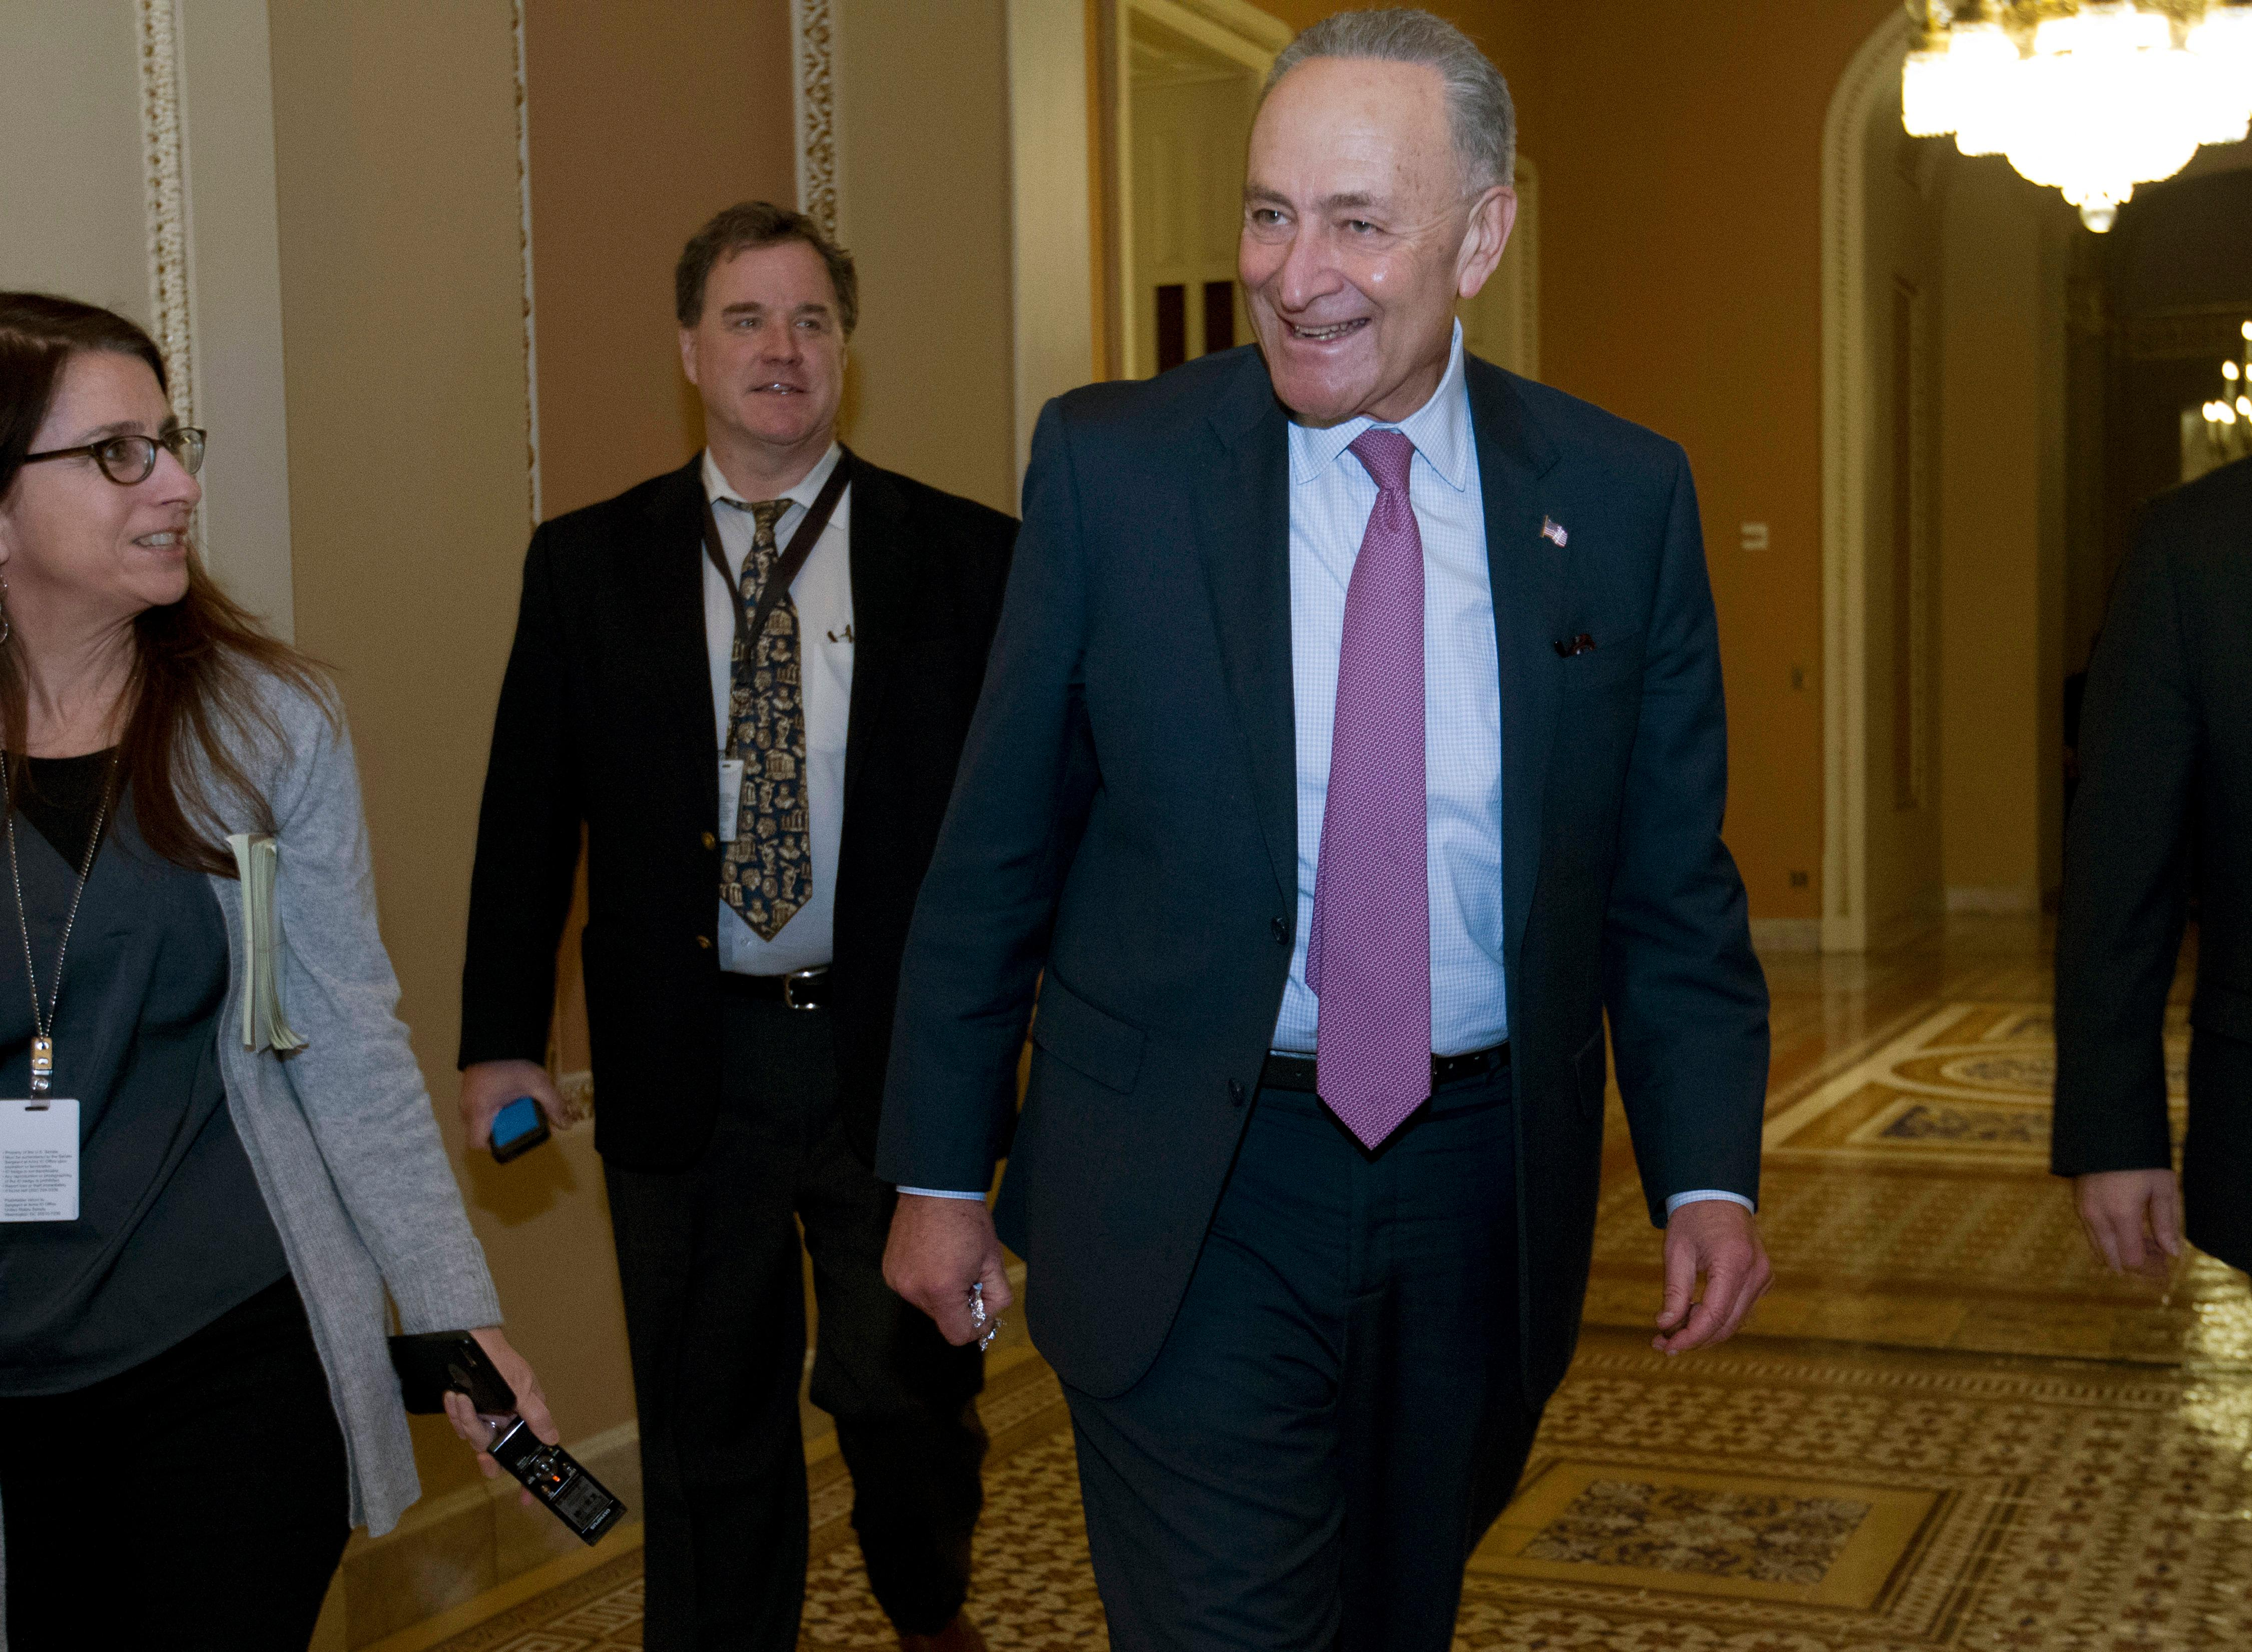 Senate Minority Leader Chuck Schumer, D-N.Y., walks to his office as he answers reporters, at the Capitol, Thursday, Feb. 8, 2018, in Washington. (AP Photo/Jose Luis Magana)